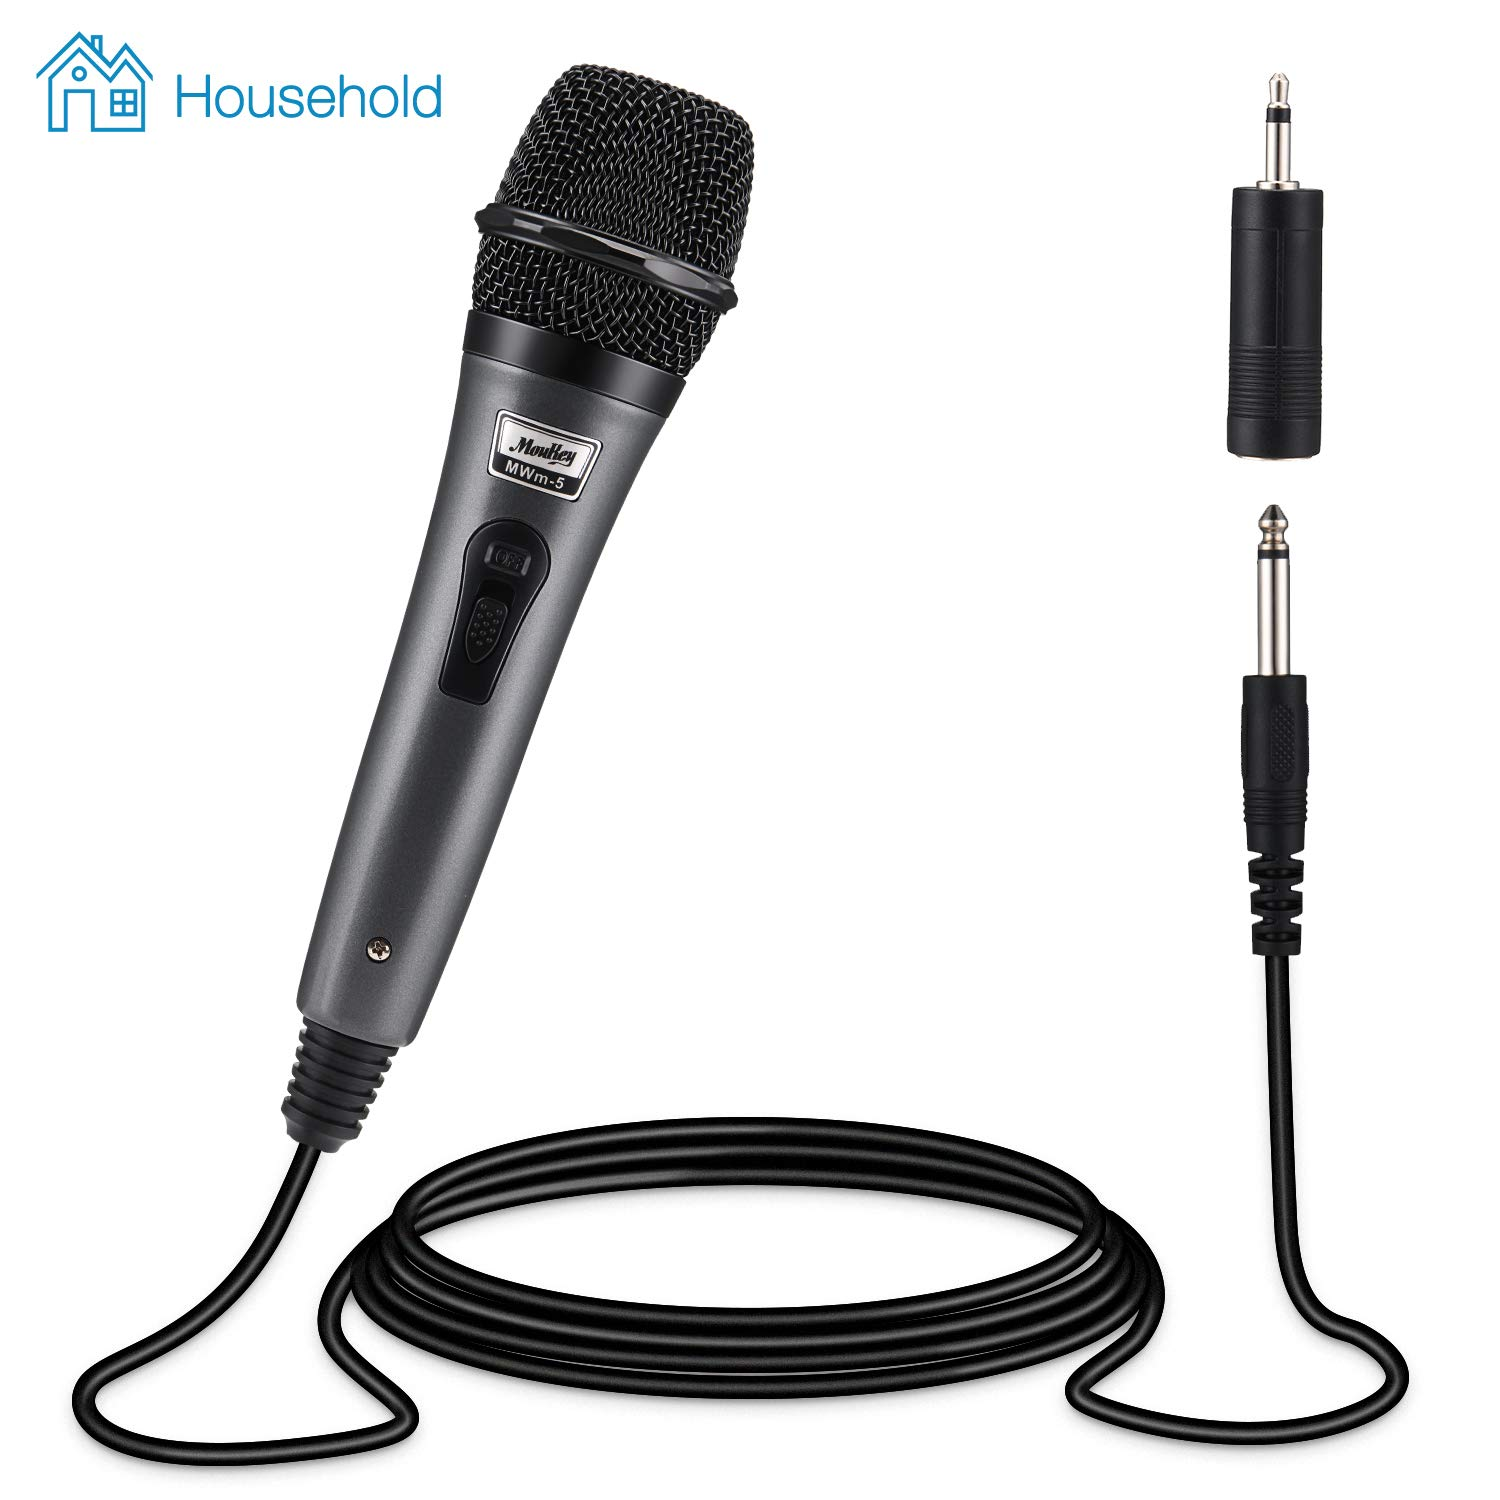 Moukey Dynamic Cardioid Home Karaoke Microphone, 13 ft XLR Cable Metal Handheld Wired Mic Corded for Singing/PA Speaker/Amp/Mixer/Karaoke Machine & Speech/Wedding/Stage (MWm-5) by Moukey